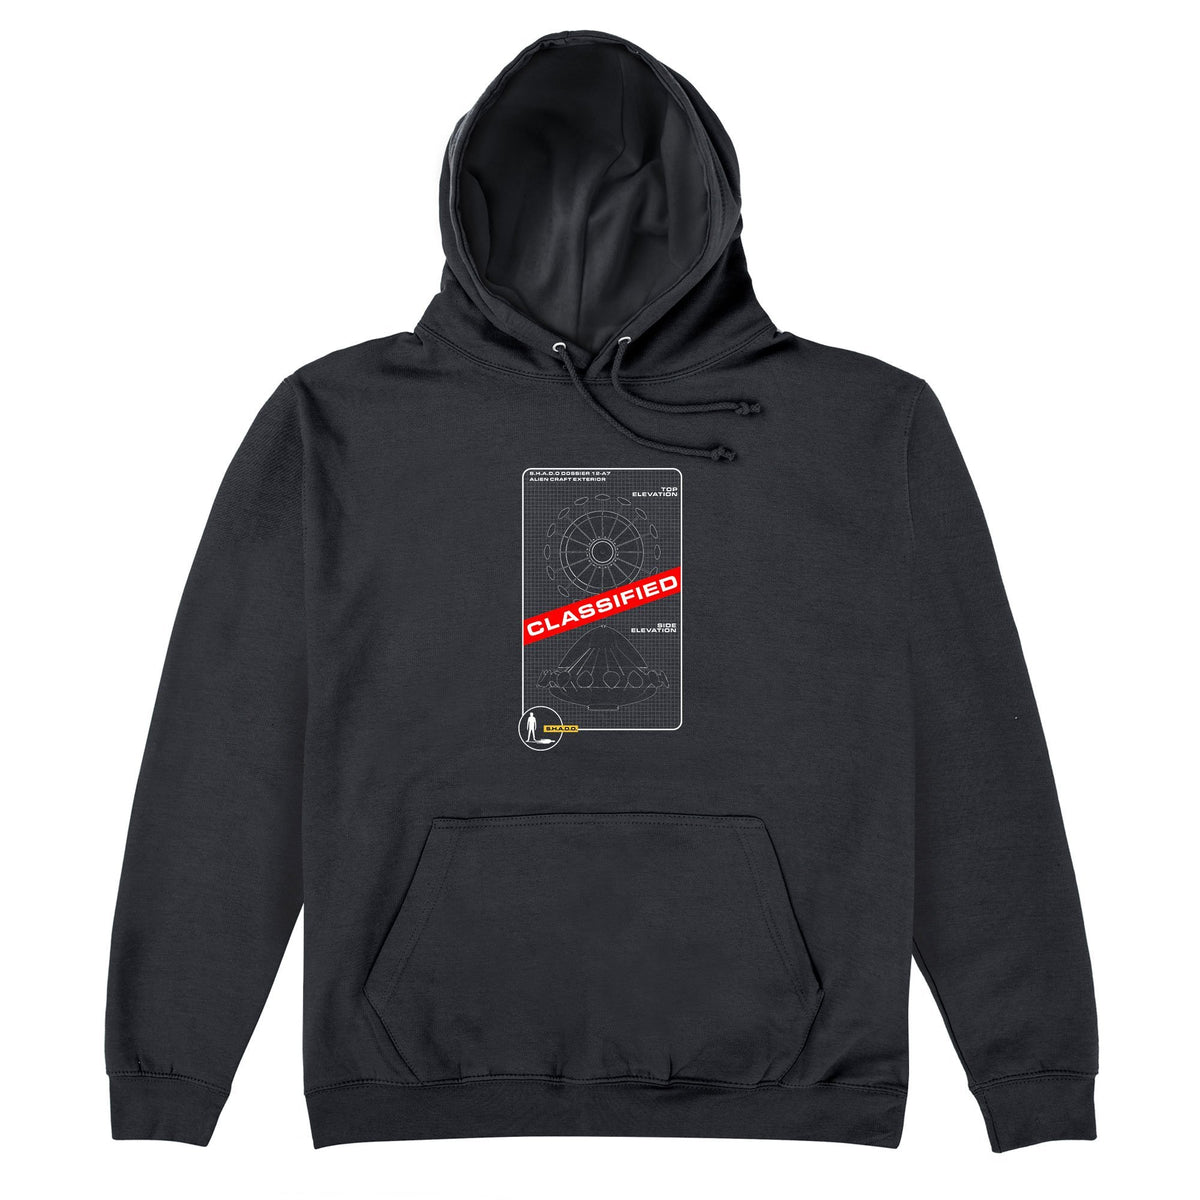 UFO Schematic Hoodie [Official & Exclusive] - The Gerry Anderson Store